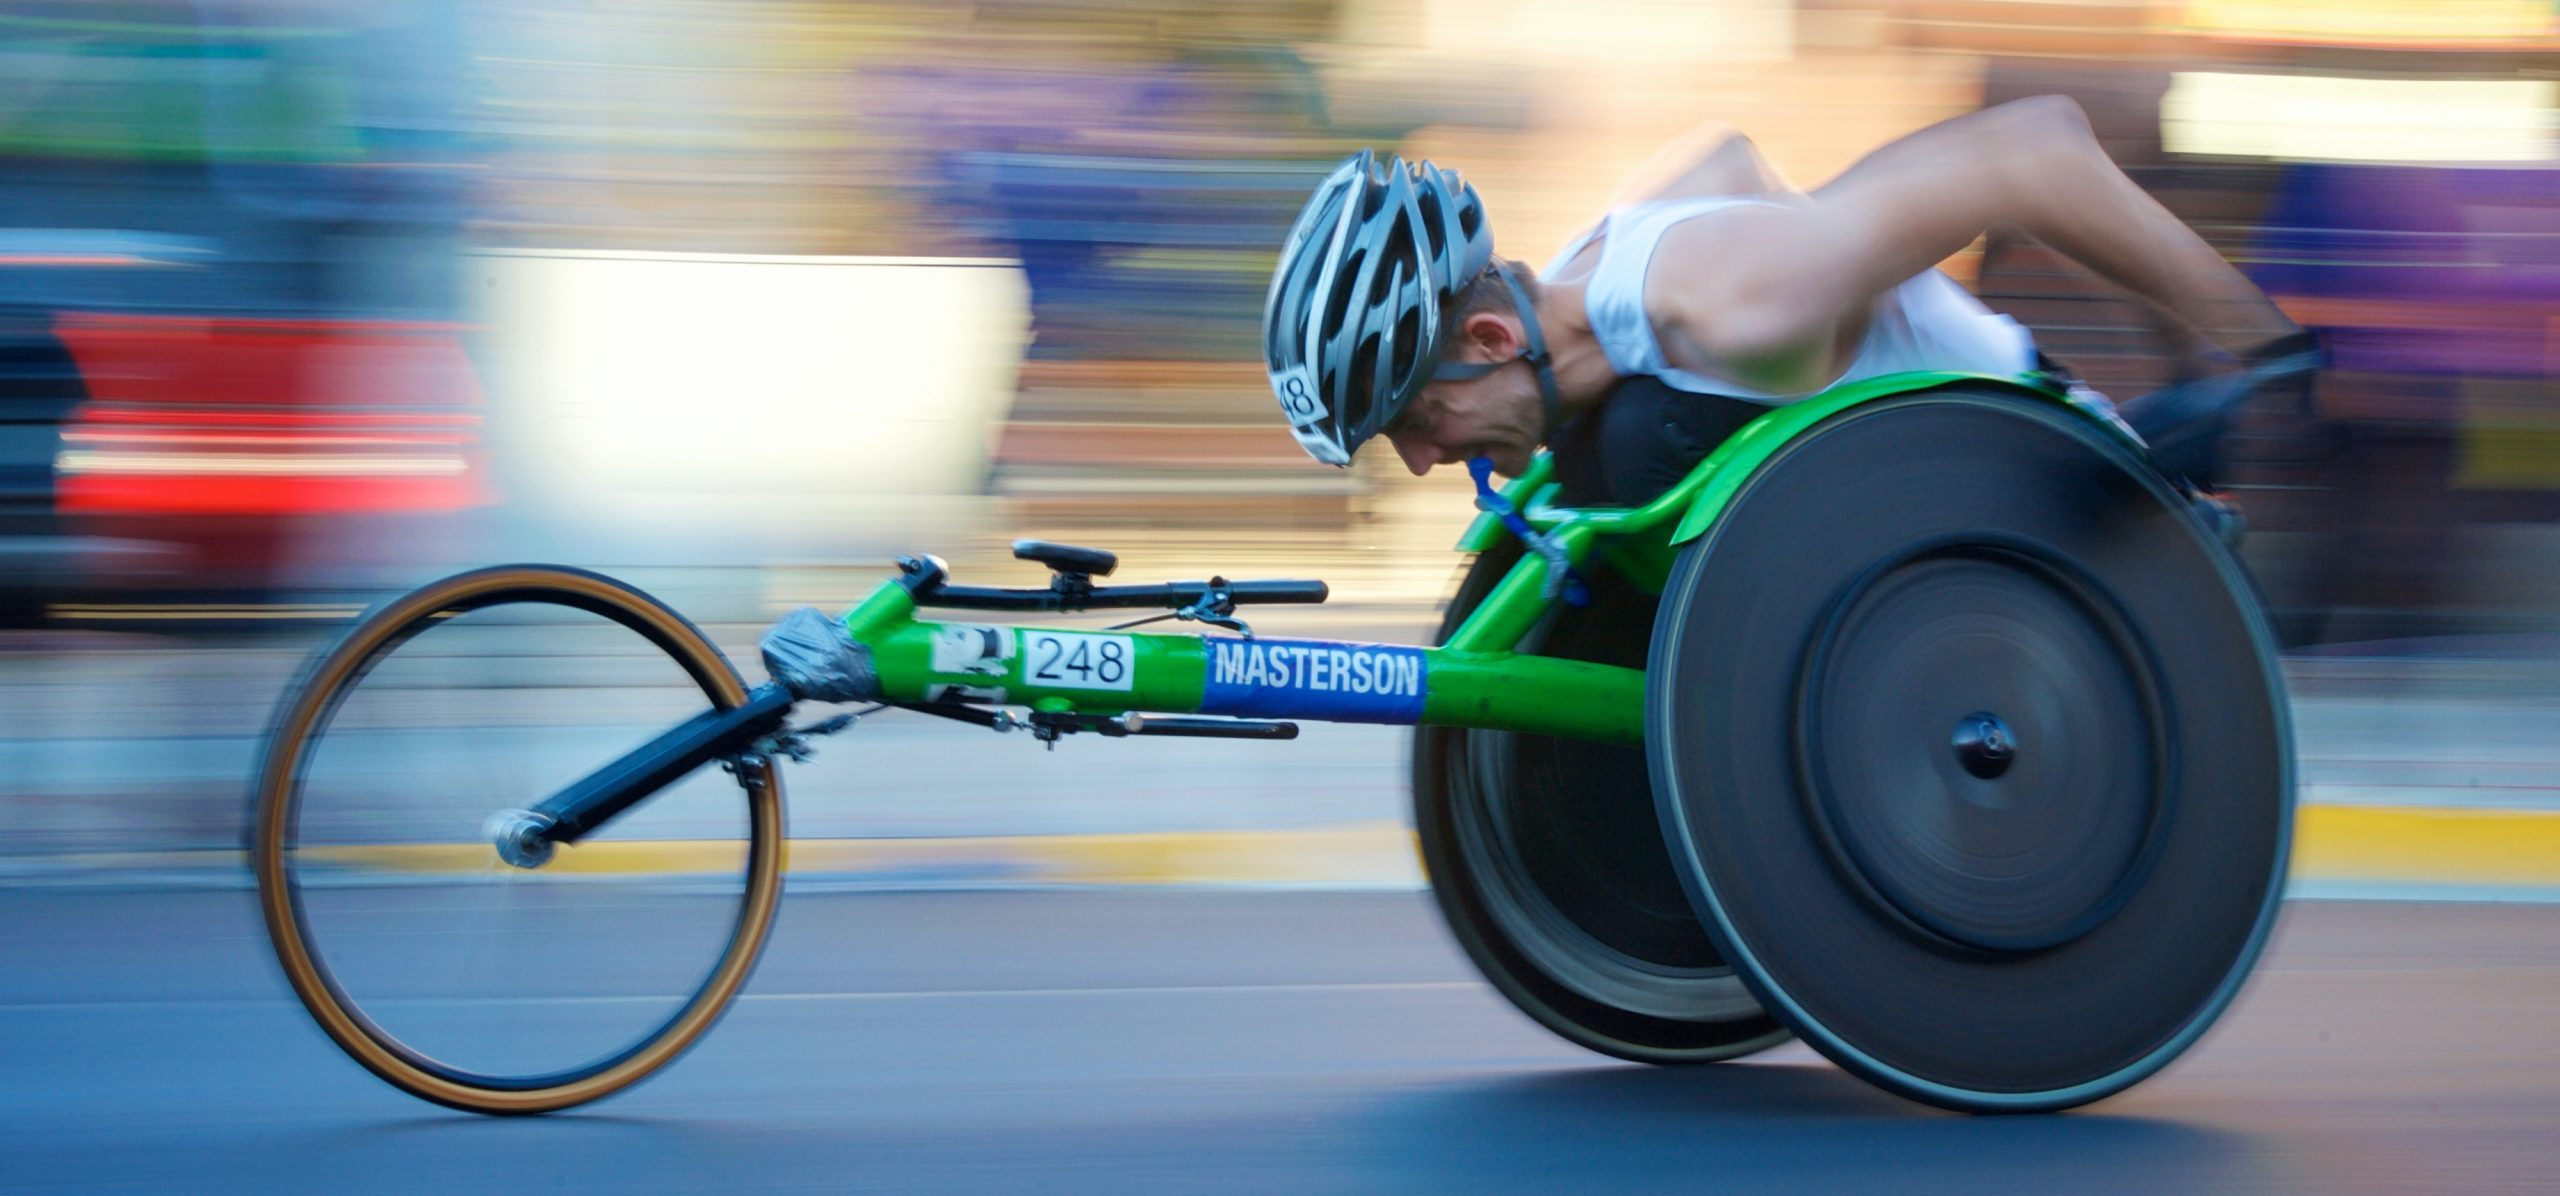 man riding green racing wheelchair